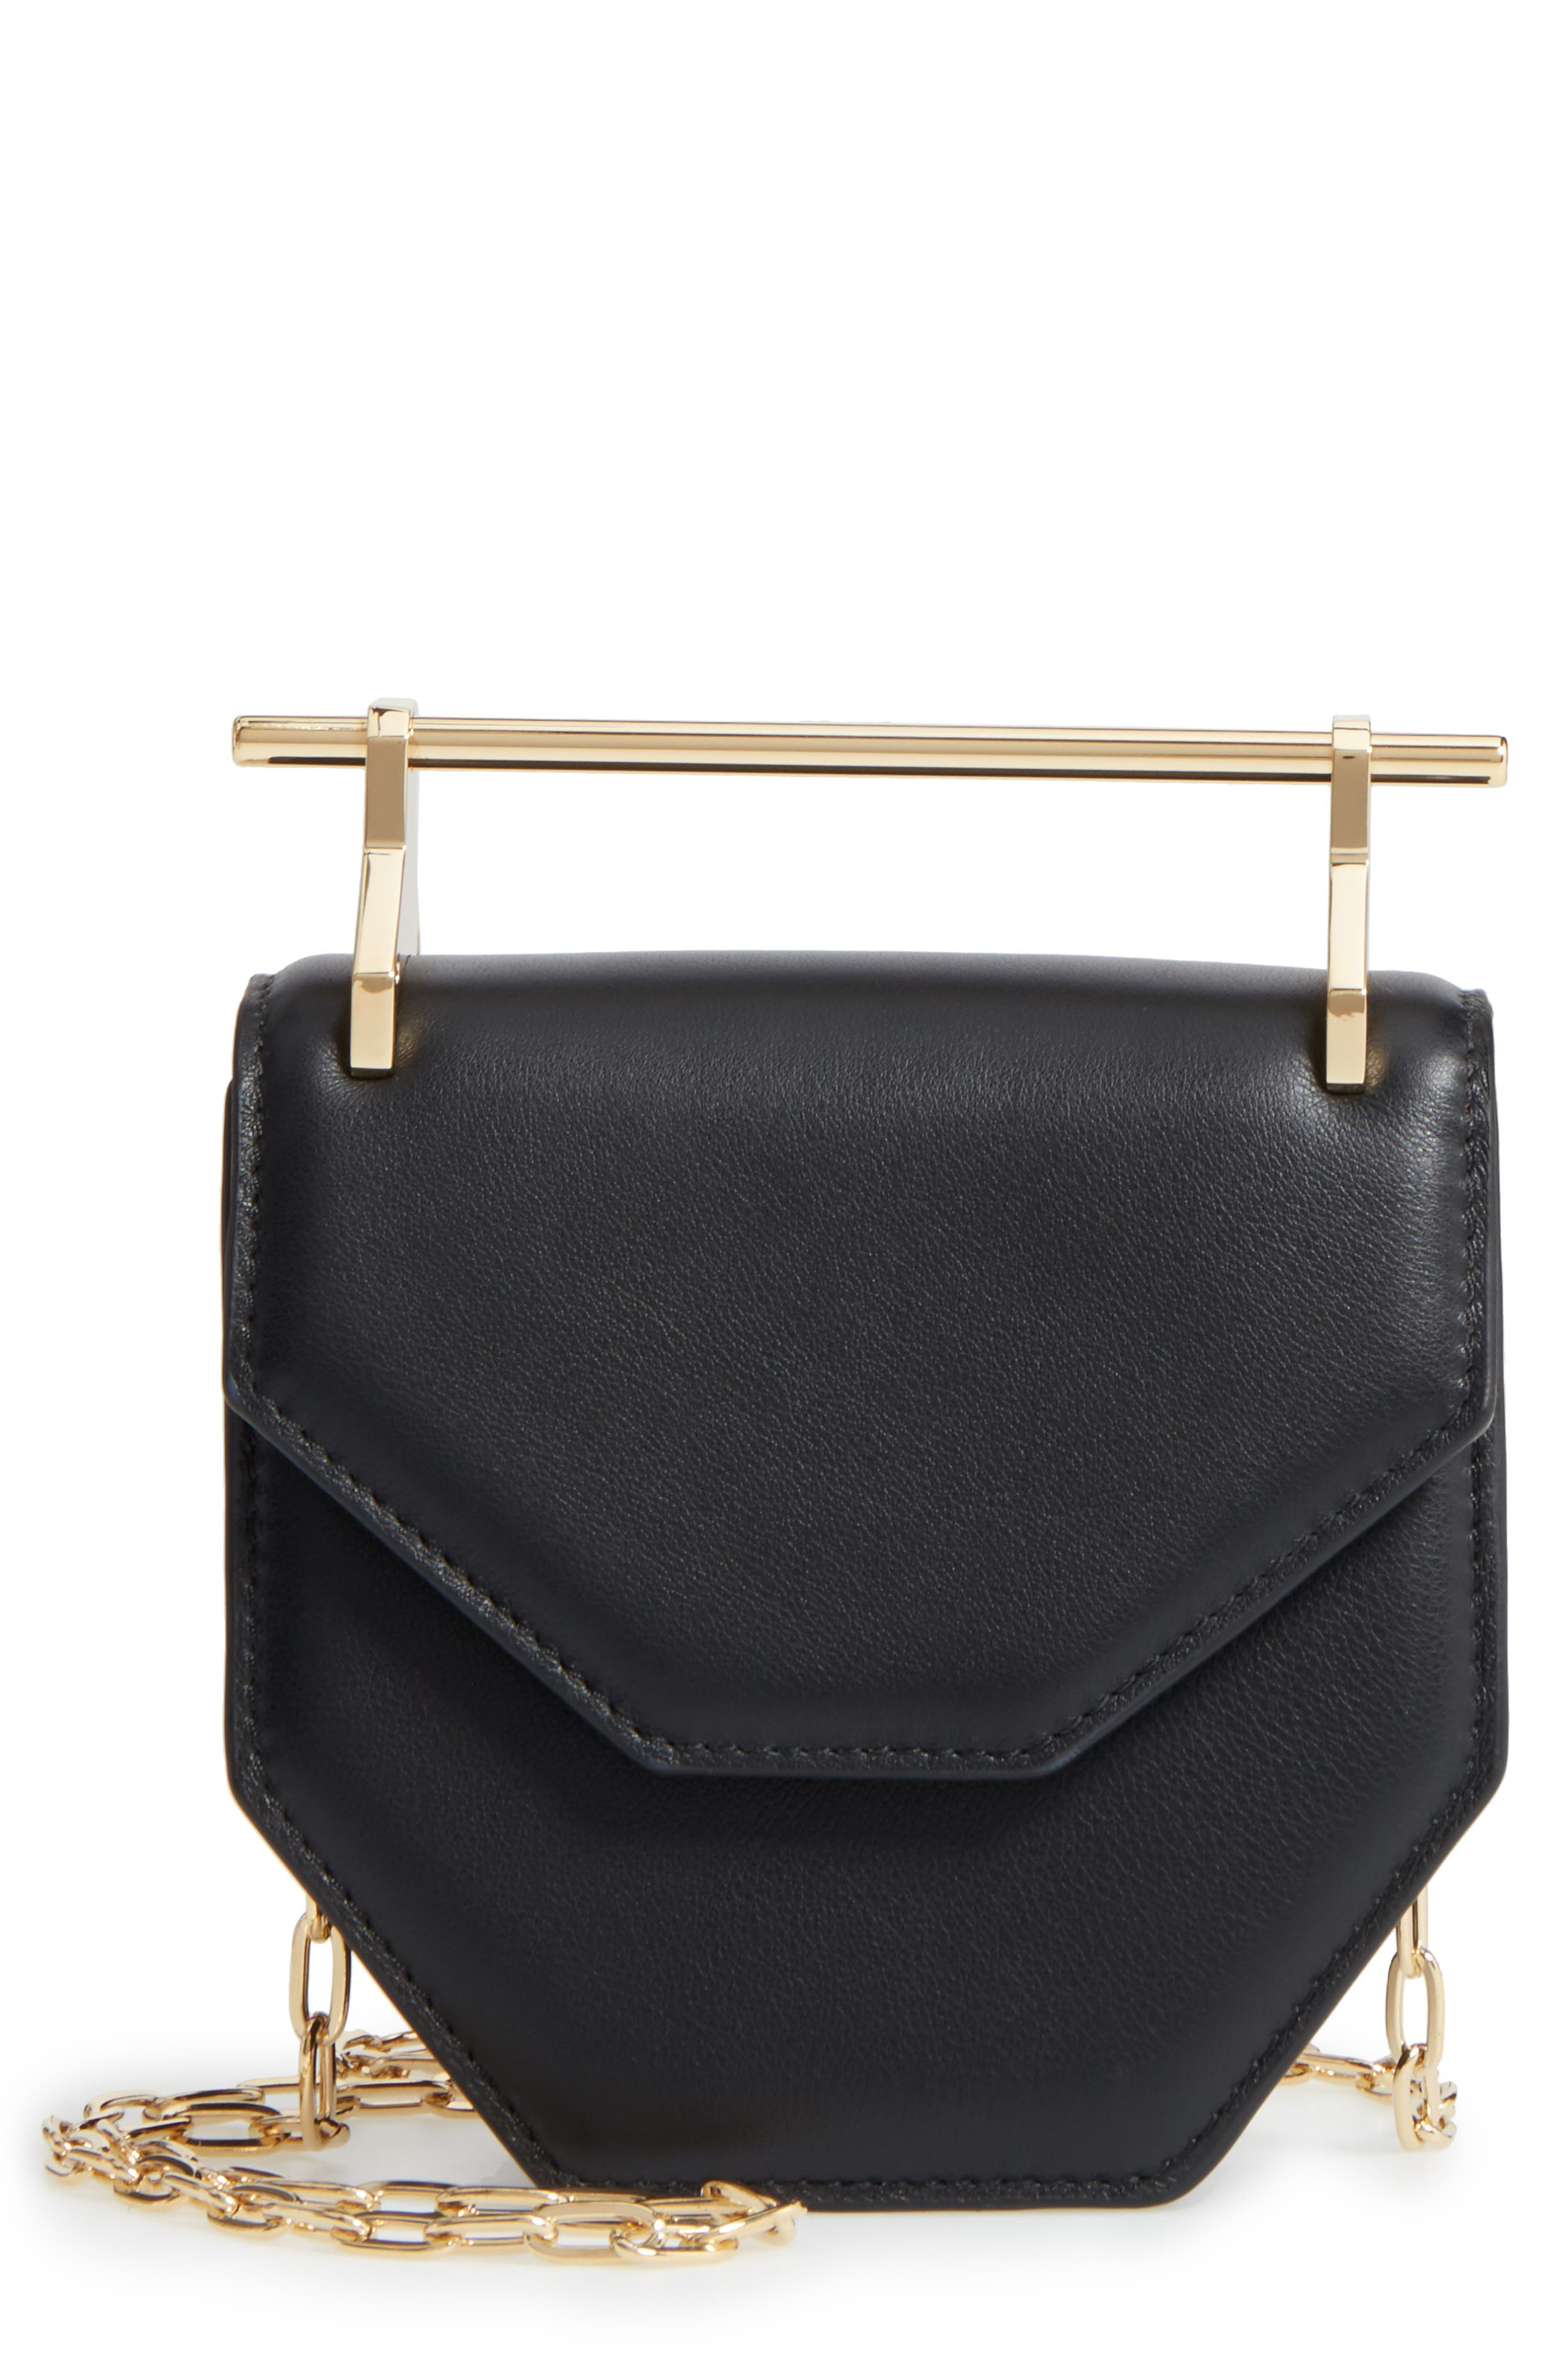 Mini Amor Fati Single Calfskin Leather Shoulder Bag,                             Main thumbnail 1, color,                             Black/ Gold